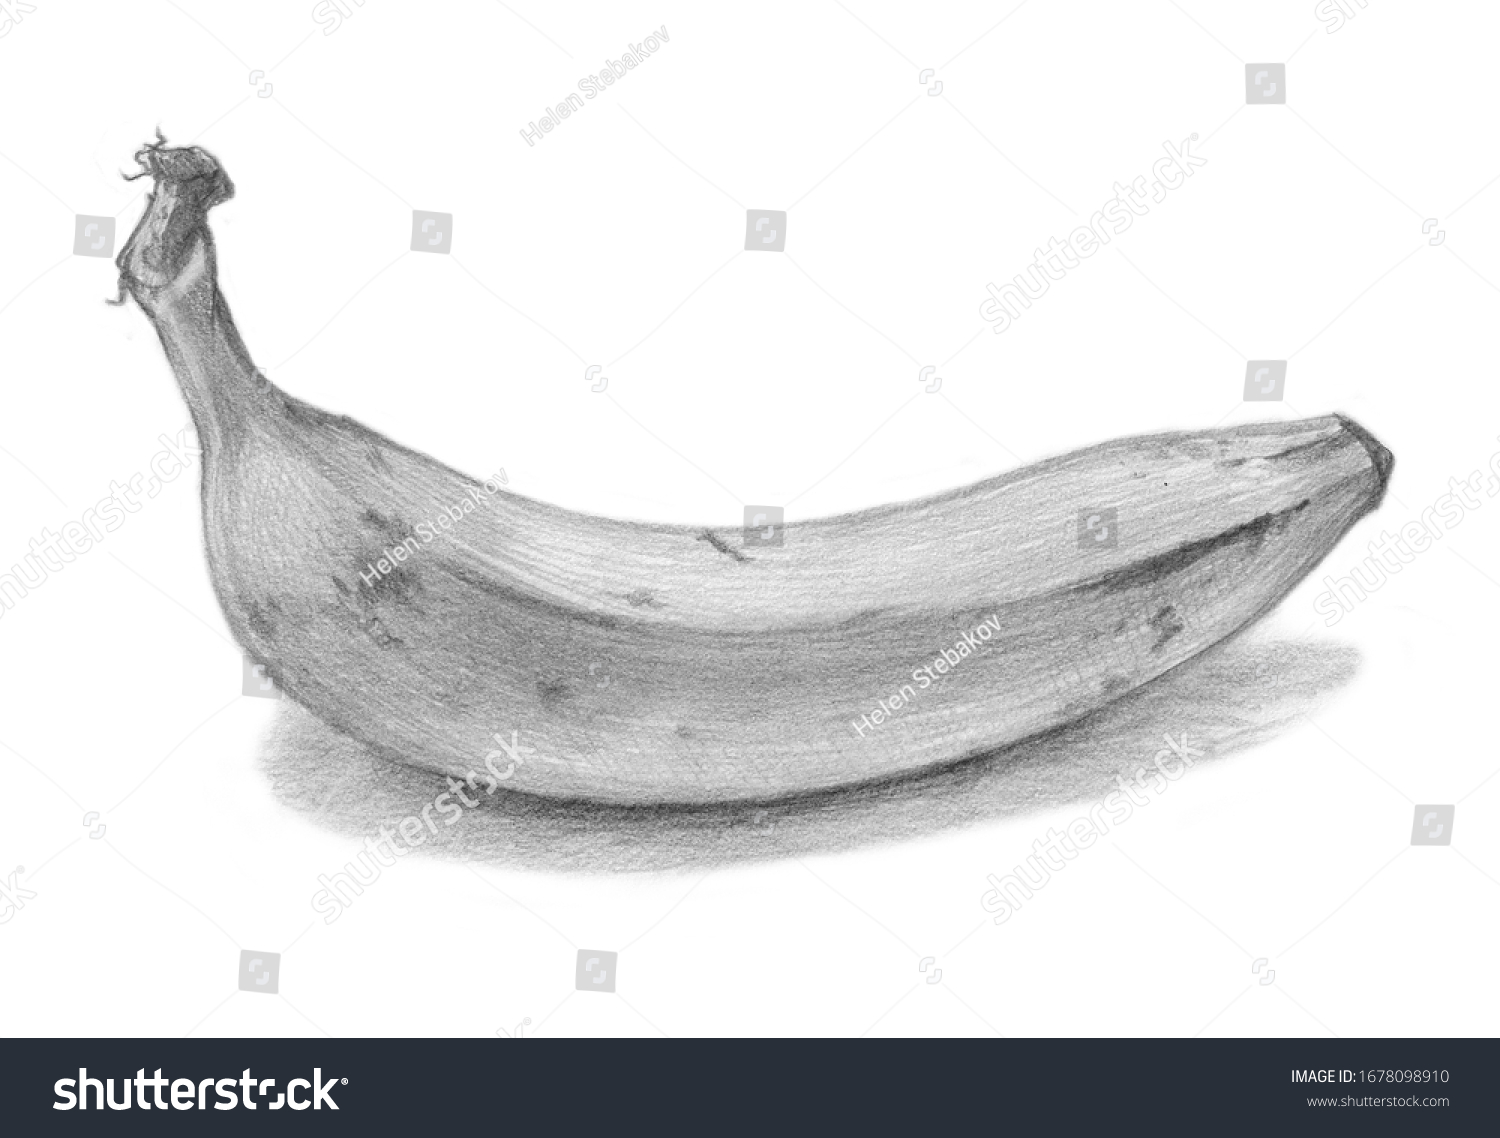 Banana Pencil Sketch On White Background Stock Illustration 1678098910